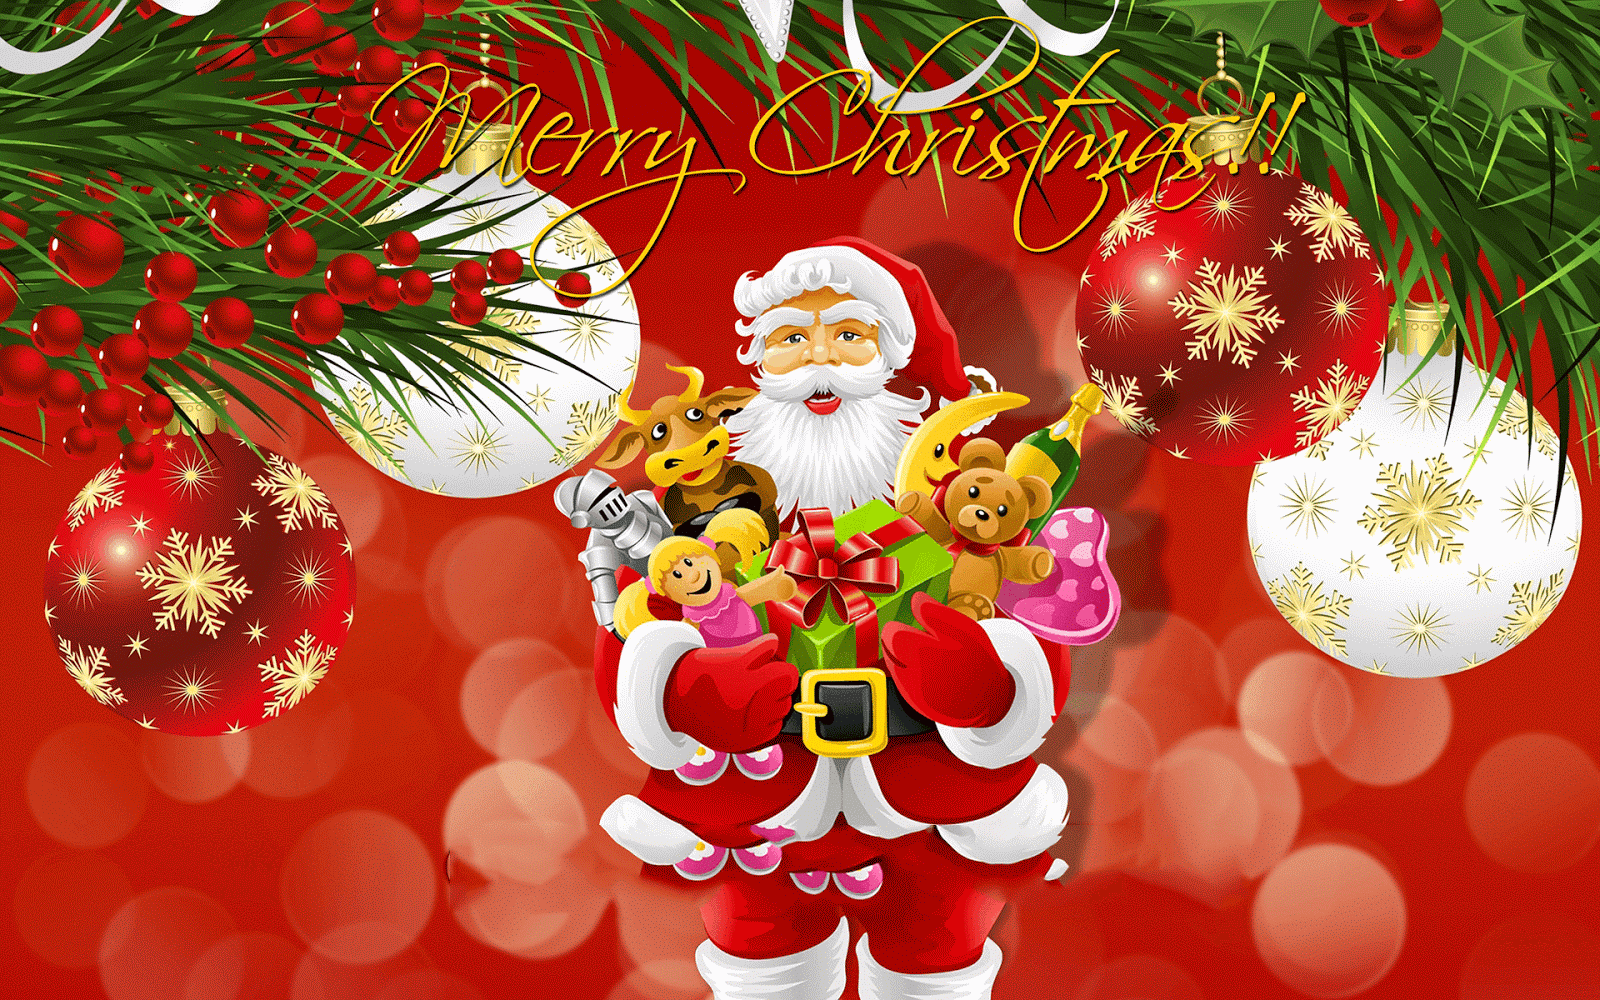 Top 24 Best Free Hd Christmas Wallpapers: Christmas Day Wallpapers HD Download Free 1080p